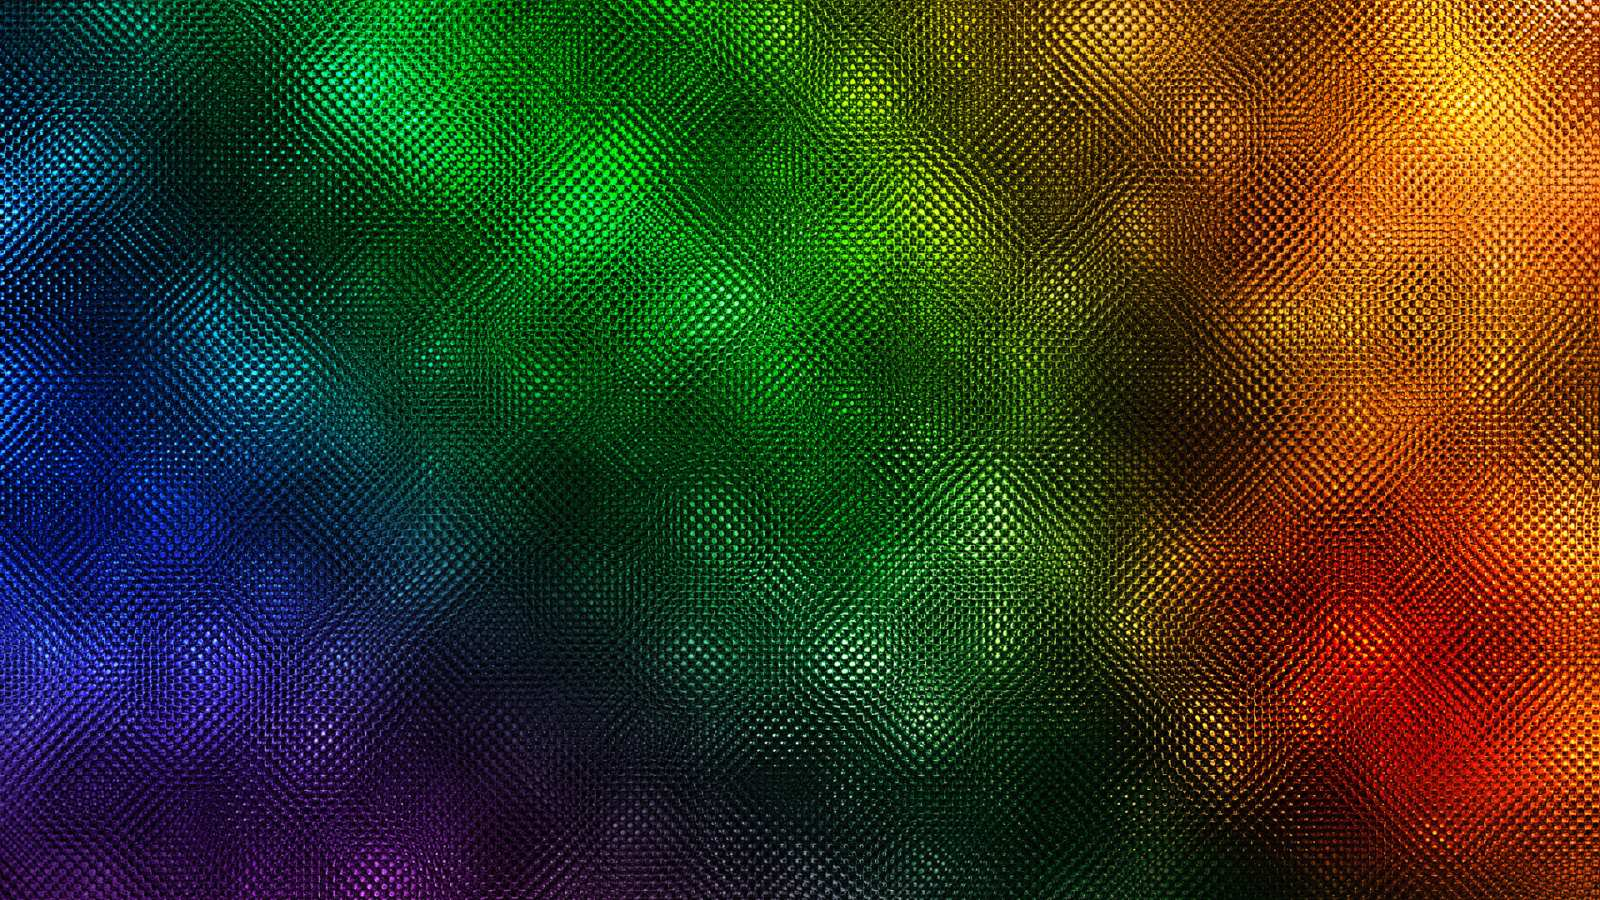 1600x900 1918-colorful-carbon-fiber-pattern-2880x1800-abstract ...